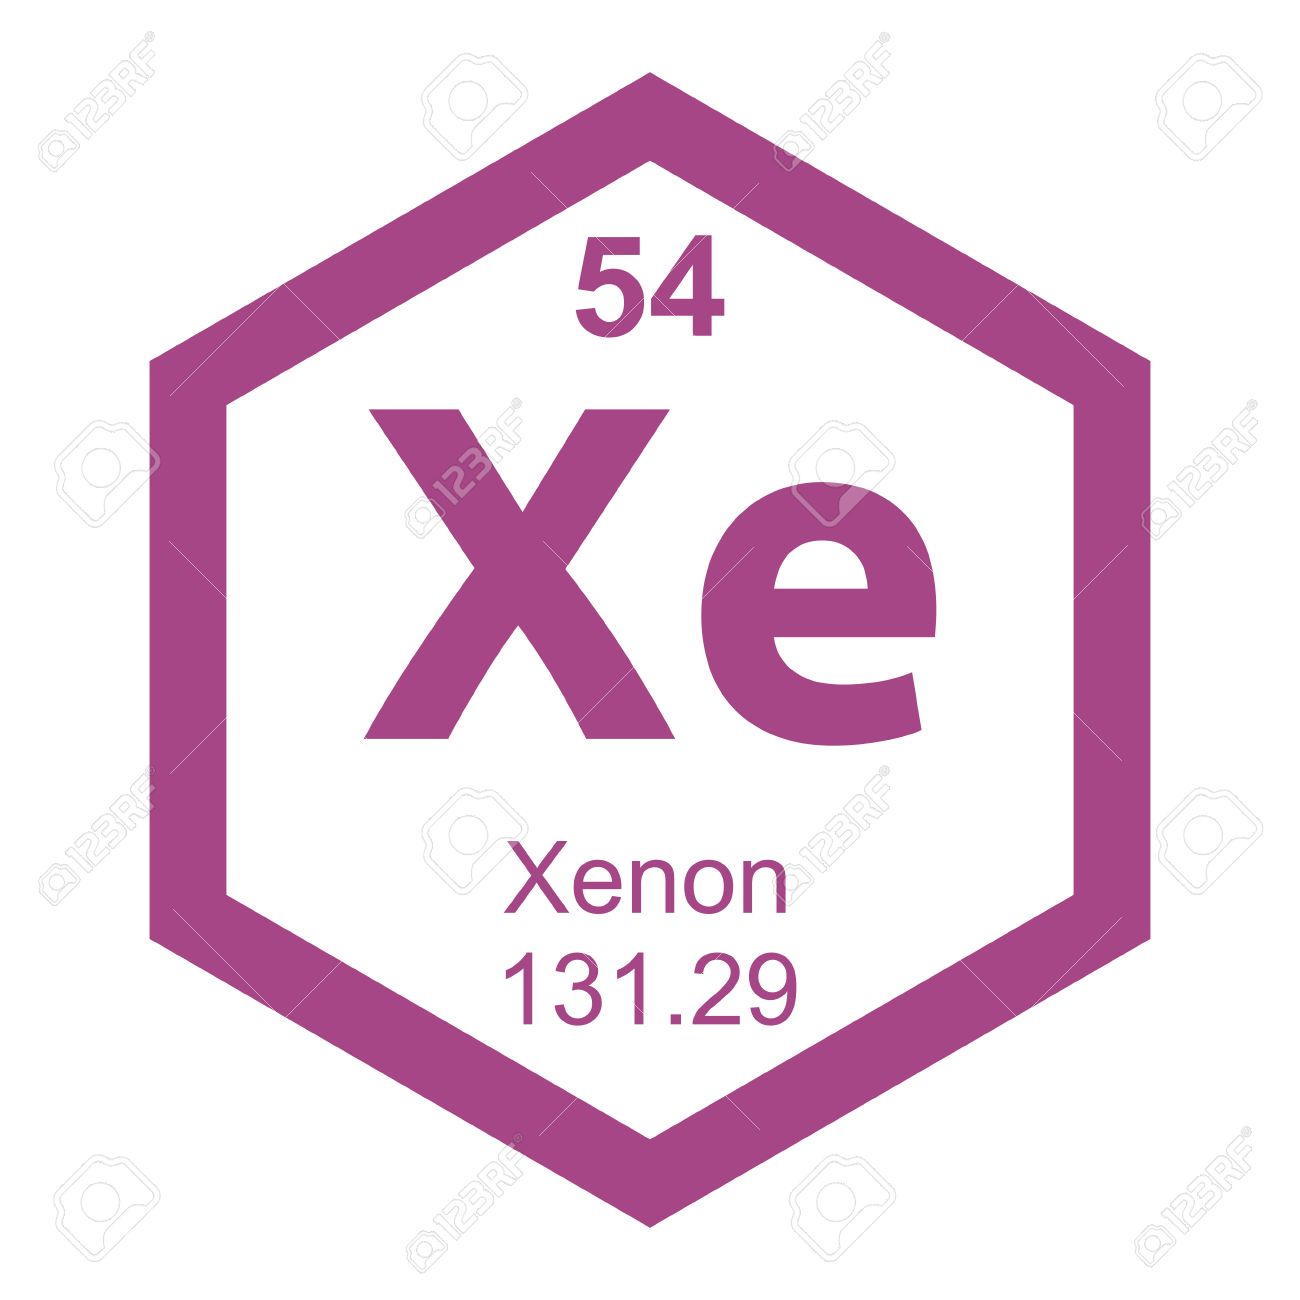 Xenon on the periodic table image collections periodic table images xenon on the periodic table image collections periodic table images periodic table xenon royalty free cliparts gamestrikefo Choice Image